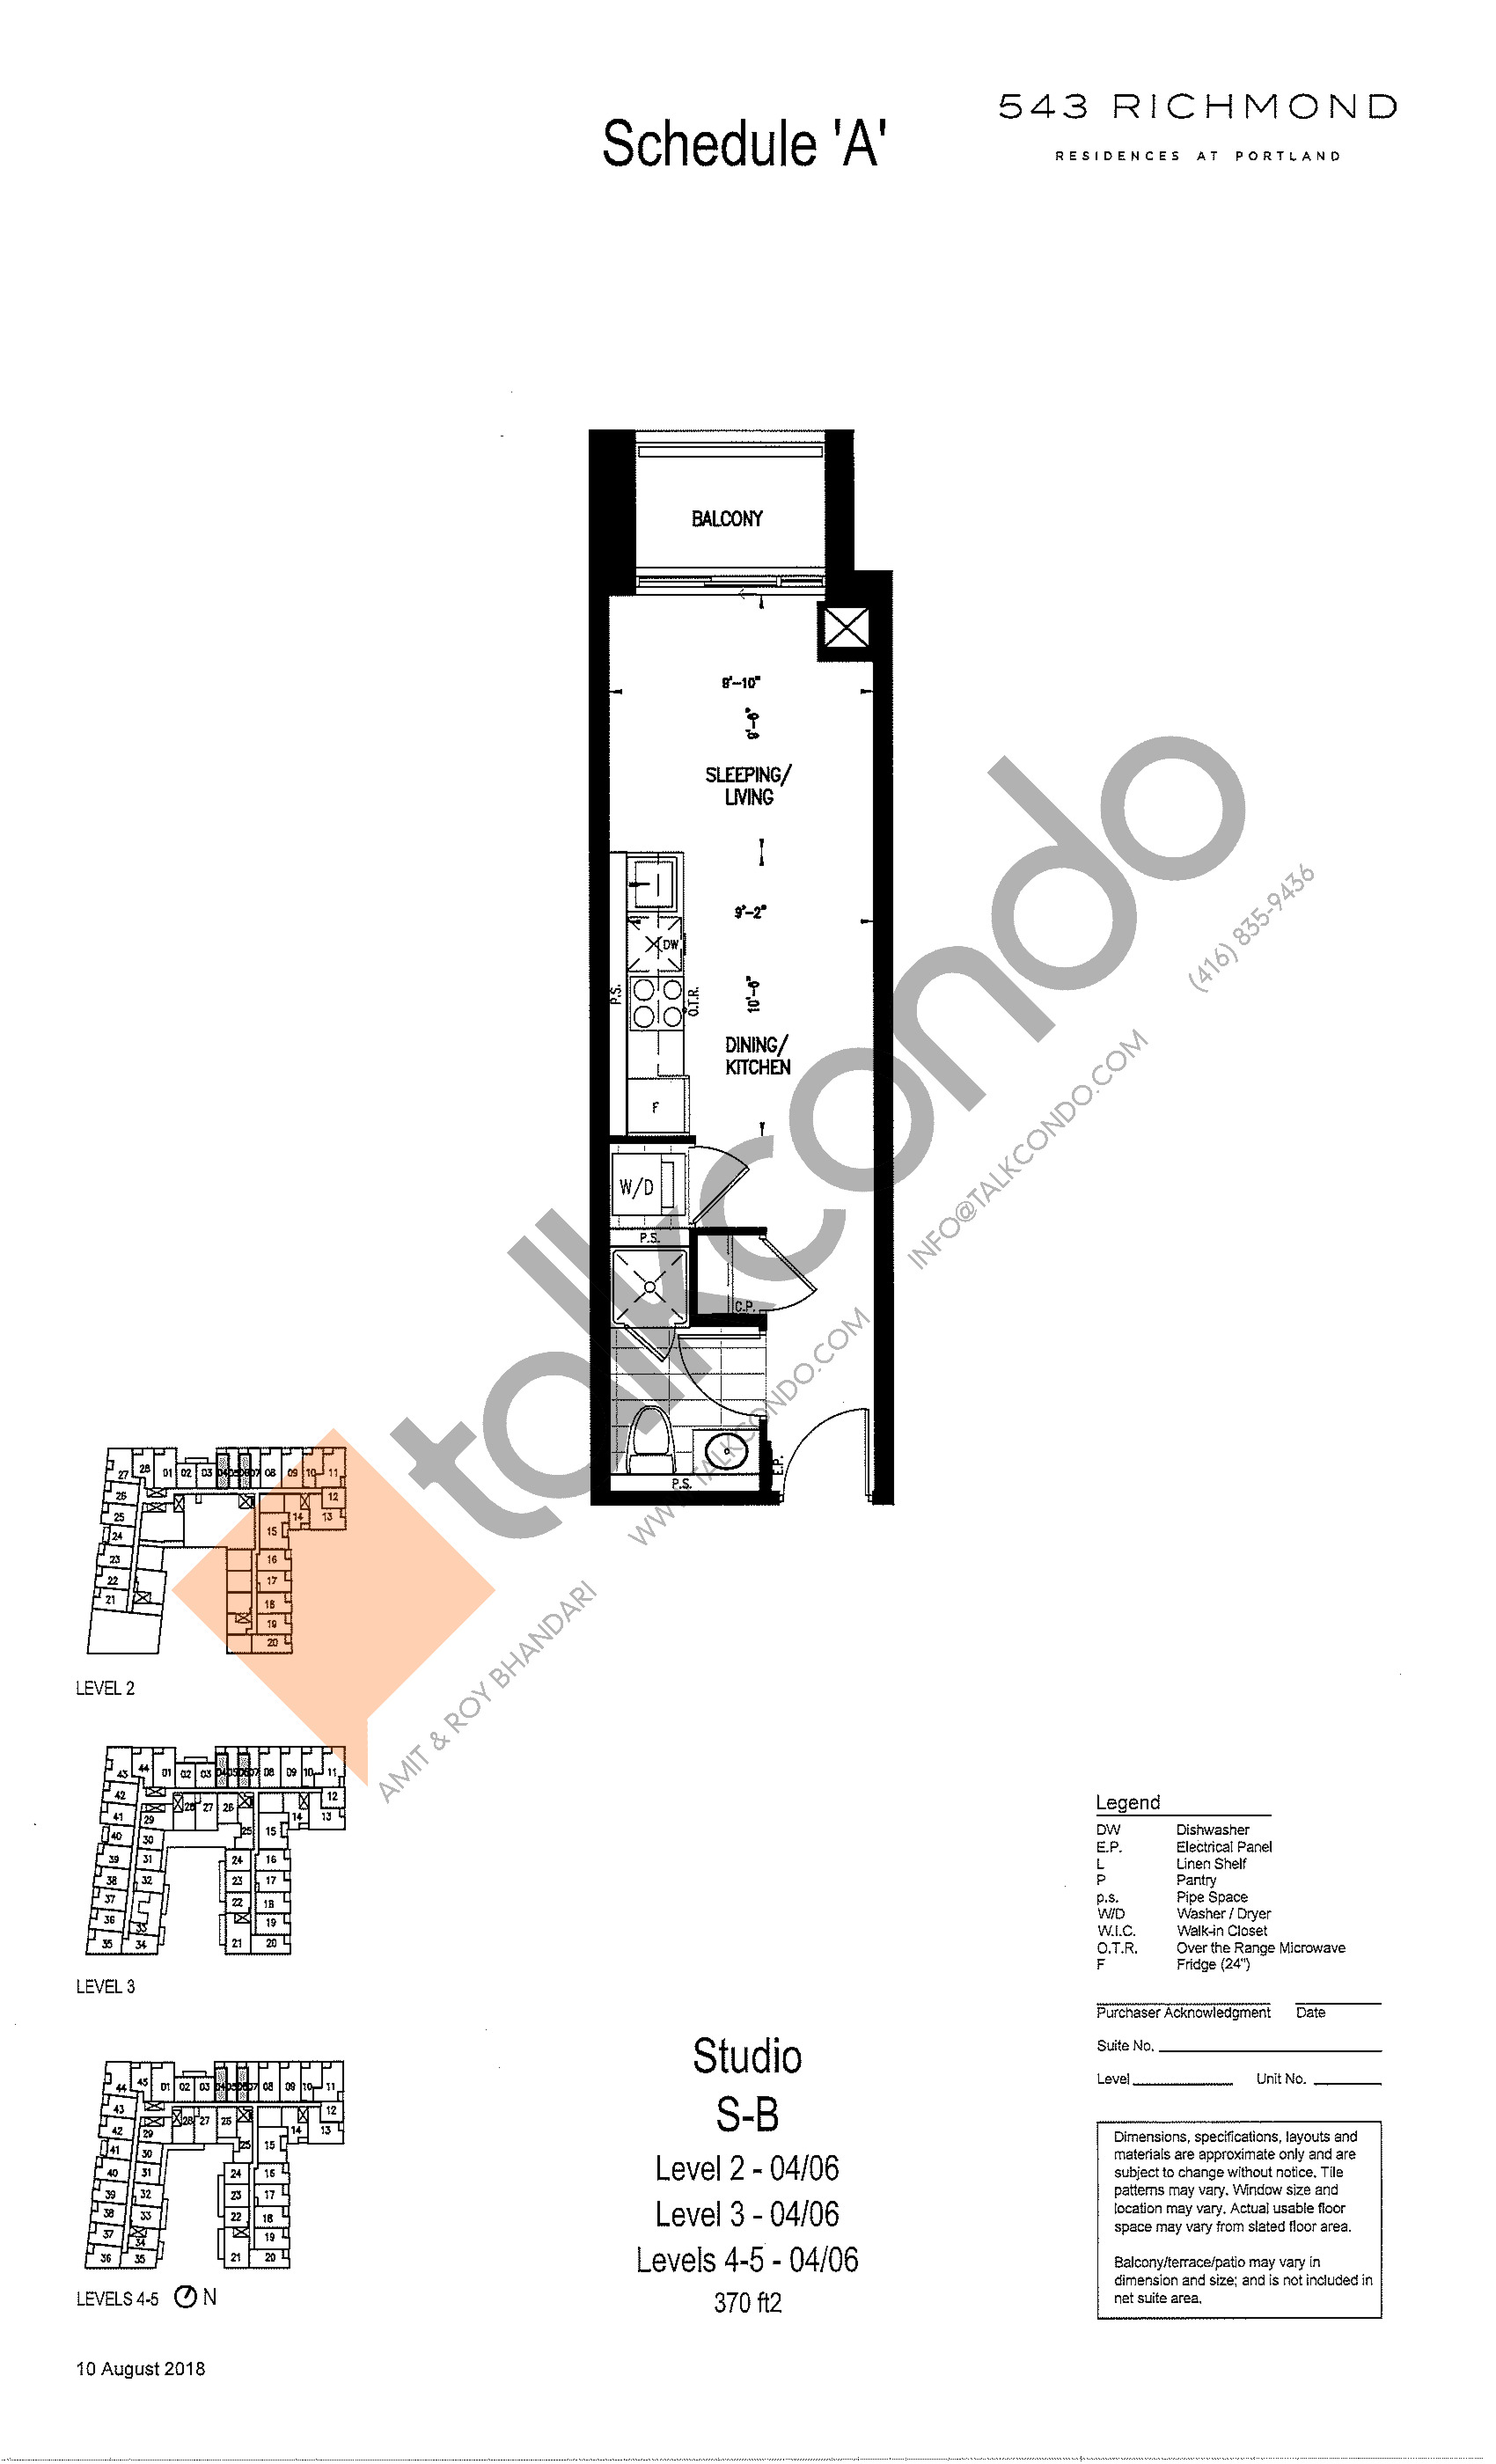 S-B Floor Plan at 543 Richmond St Condos - 370 sq.ft